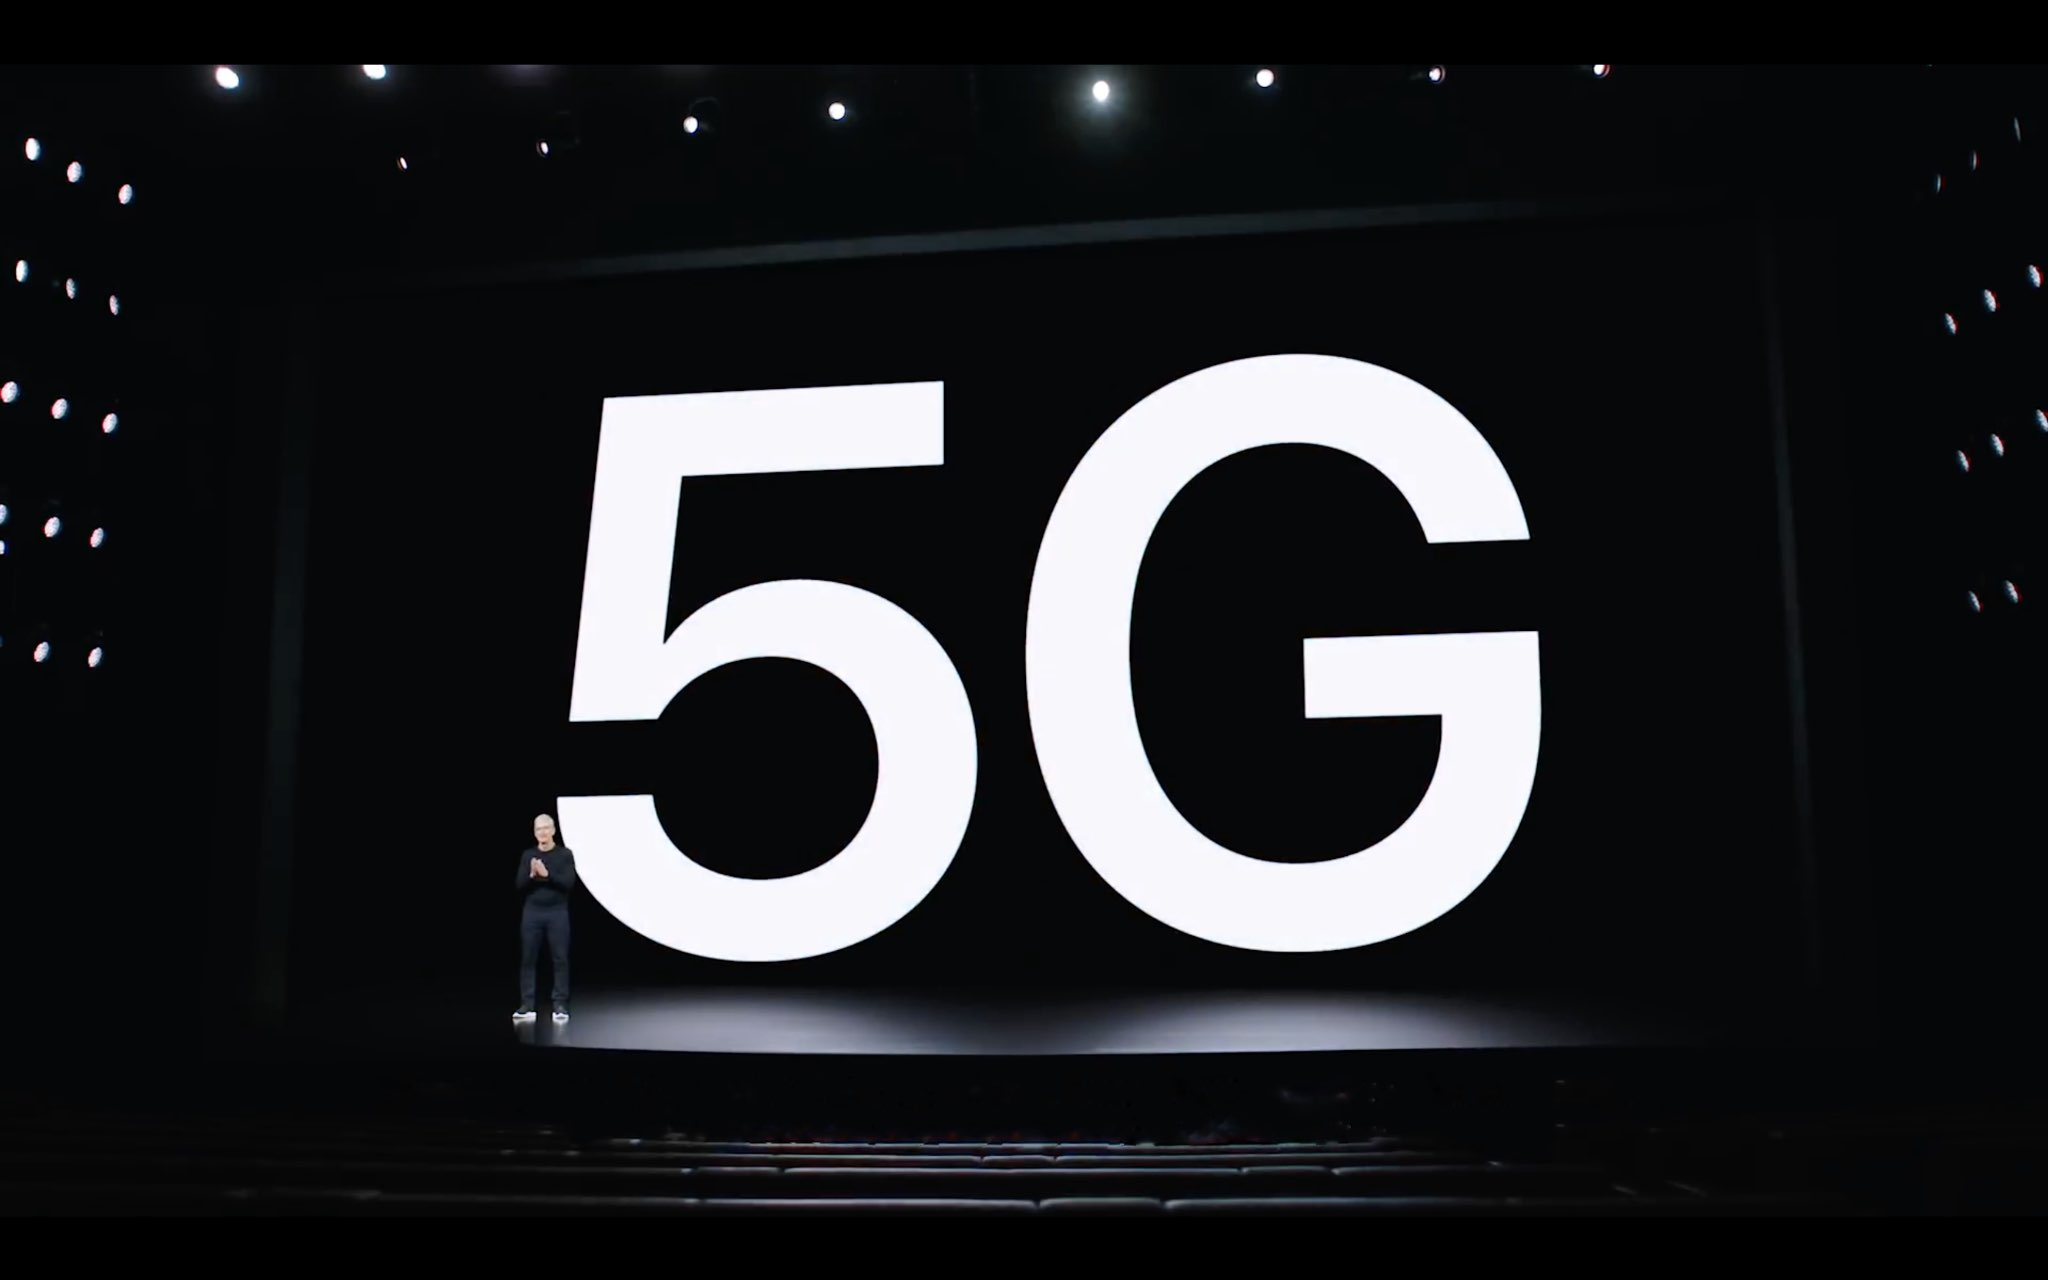 manage 5G iPhone - WWDC 2020 slide showing 5G